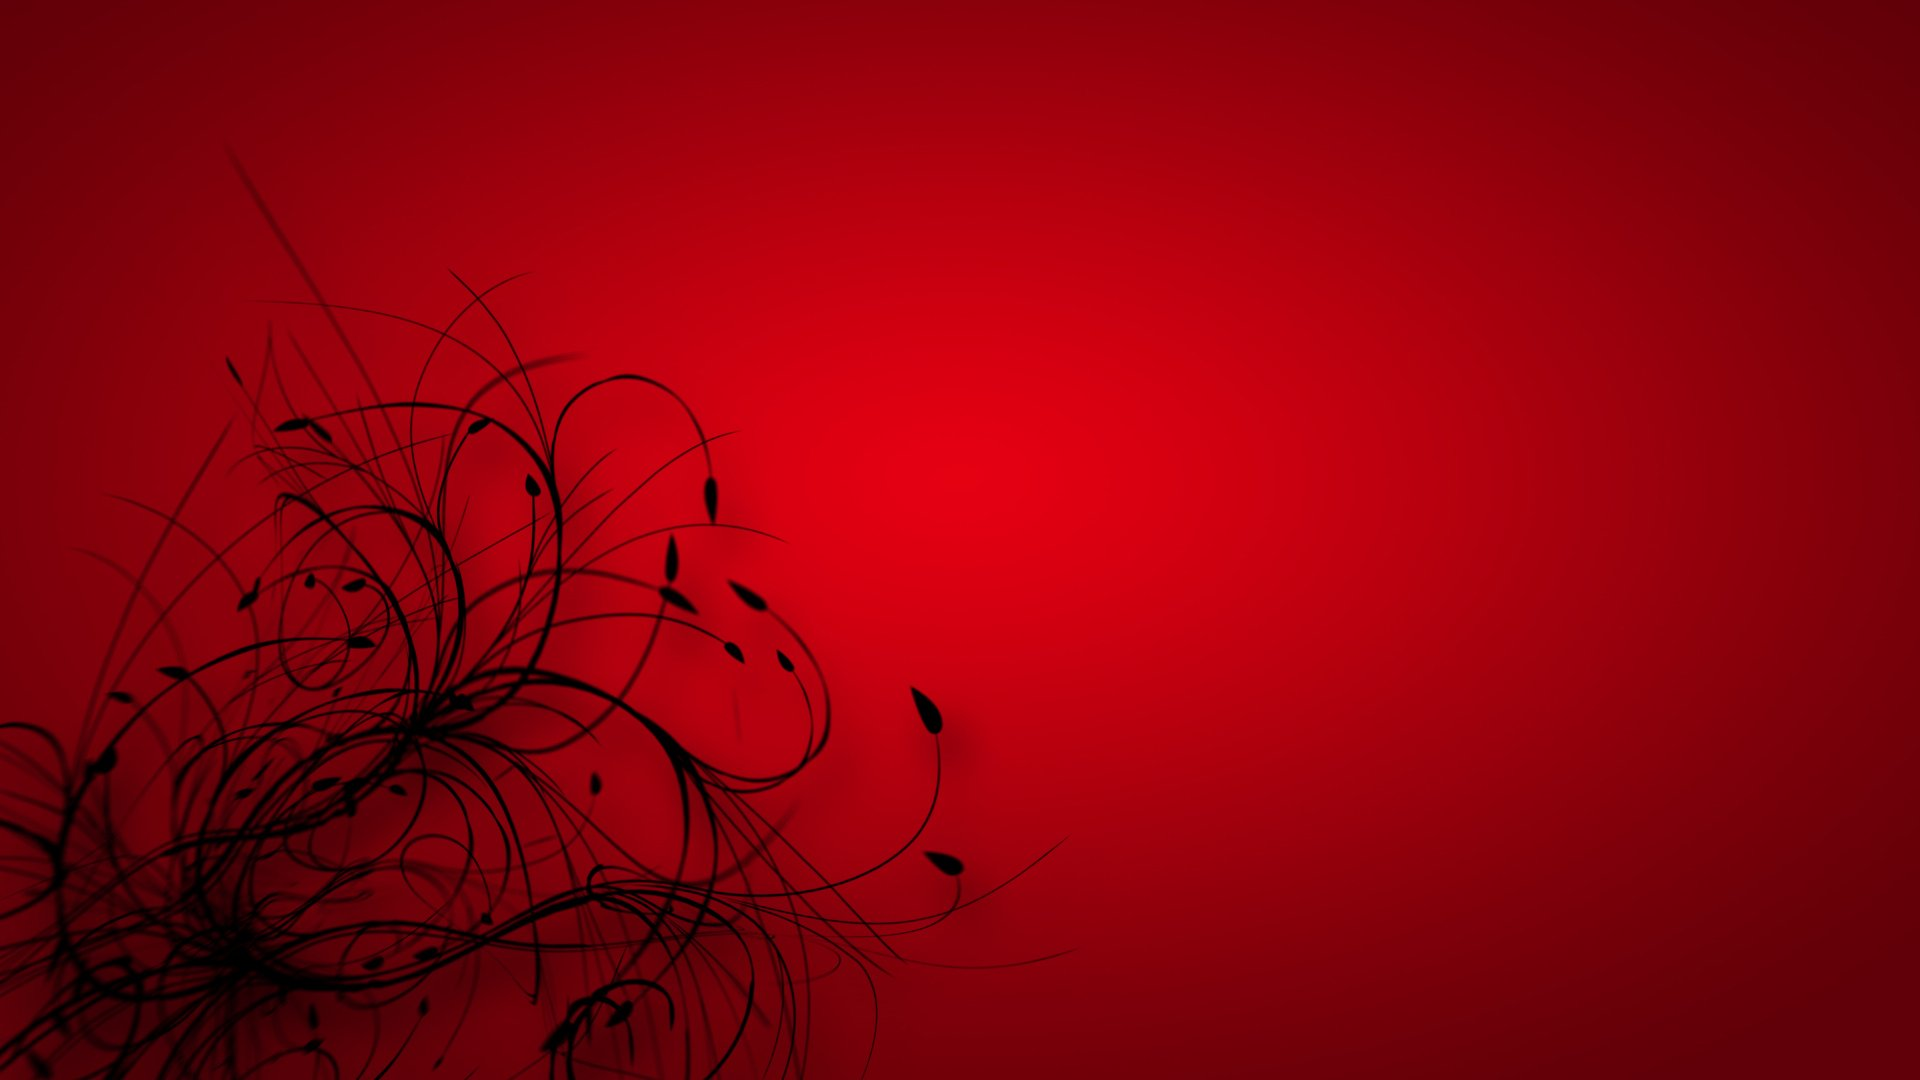 Red 3D wallpapers Red 3D background   Page 7 1920x1080